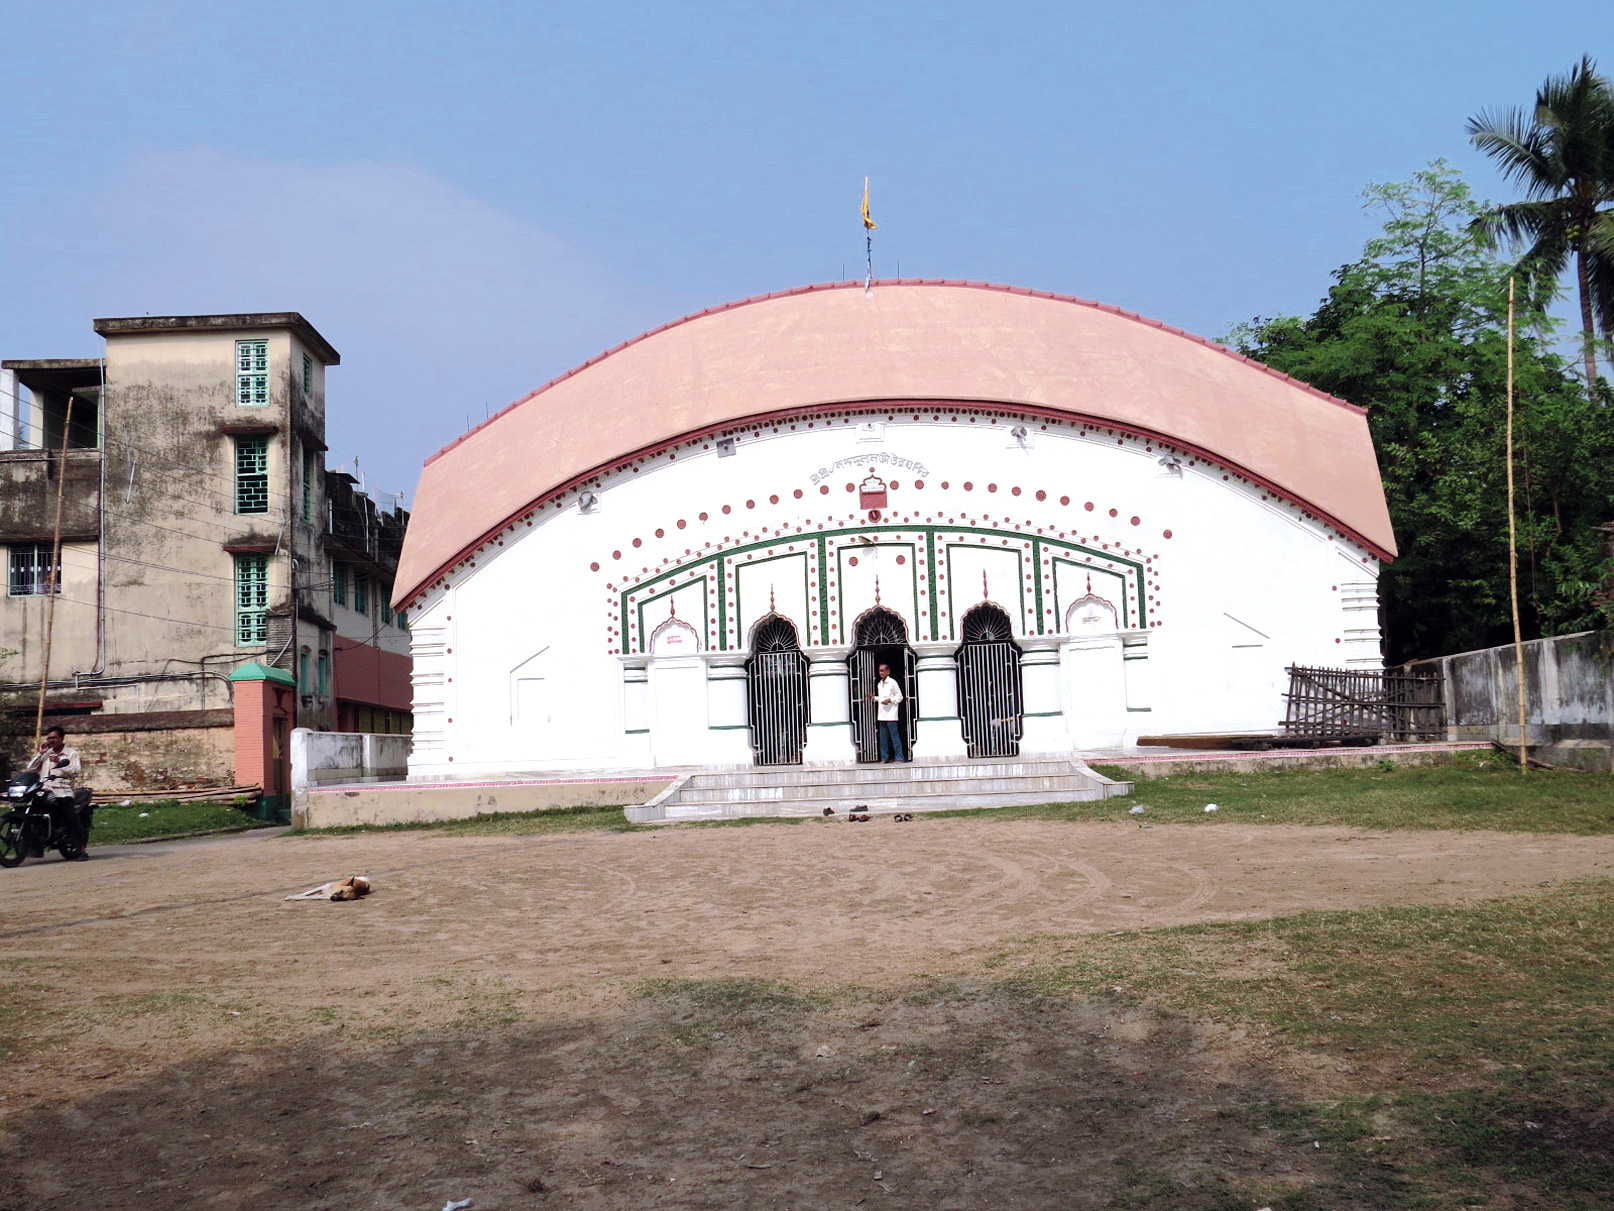 Tour to revive Chandernagore's 'intangible' heritage